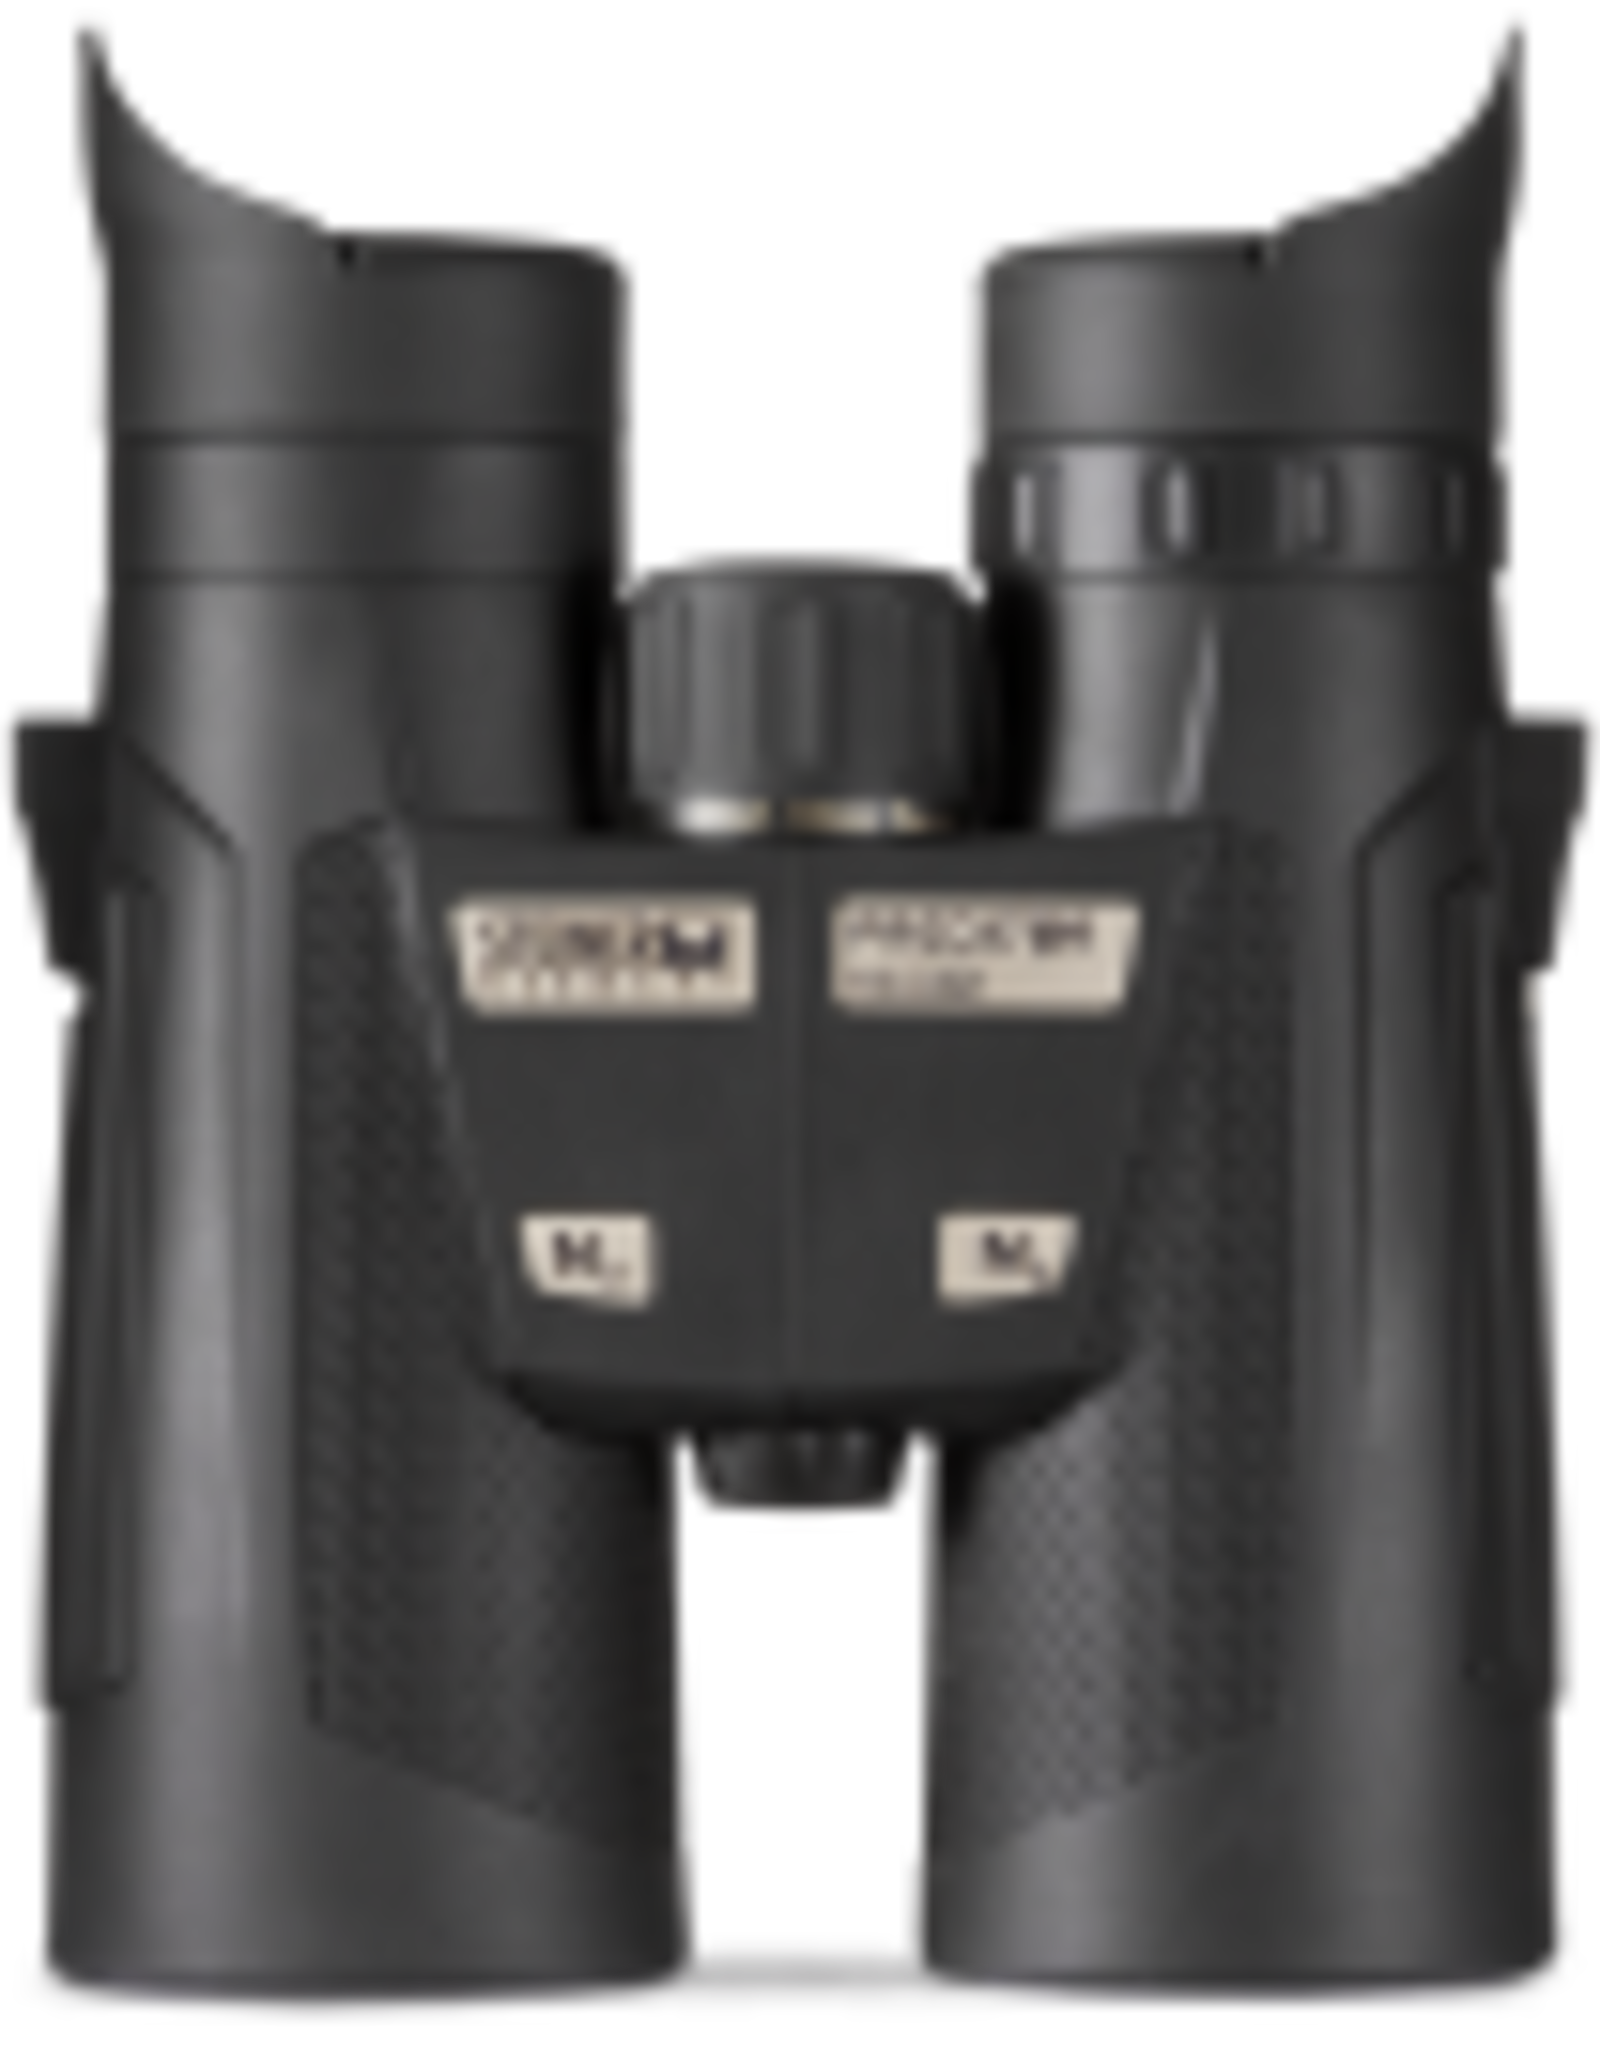 Steiner 70th Anniversary Limited Edition Predator 10x42 Binoculars with LED Lenser Flashlight